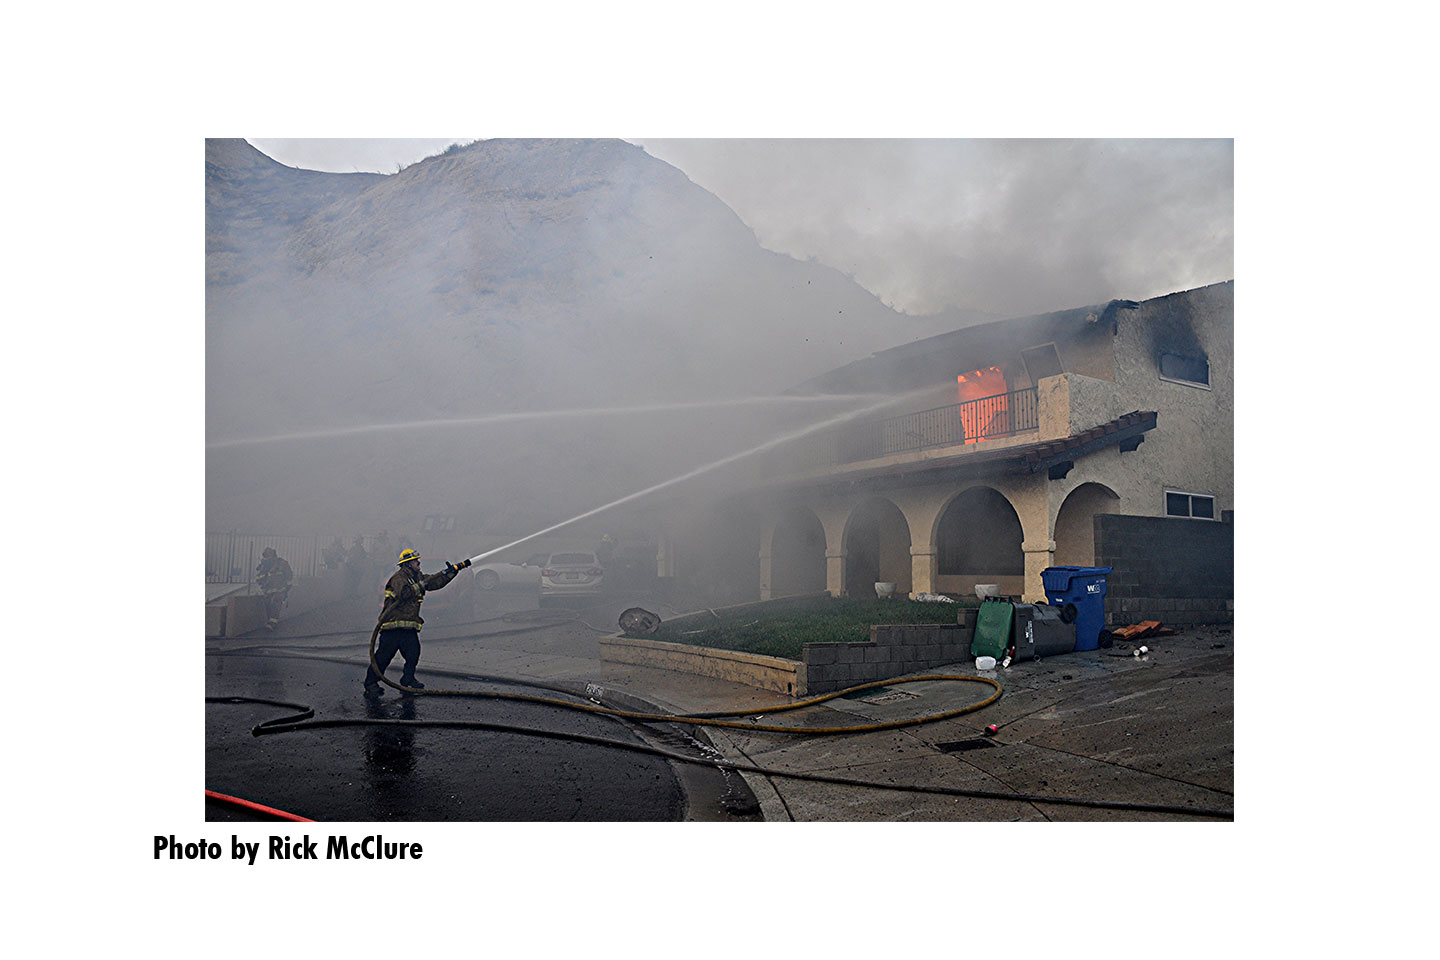 Firefighters direct streams onto a burning building during the Tick Fire